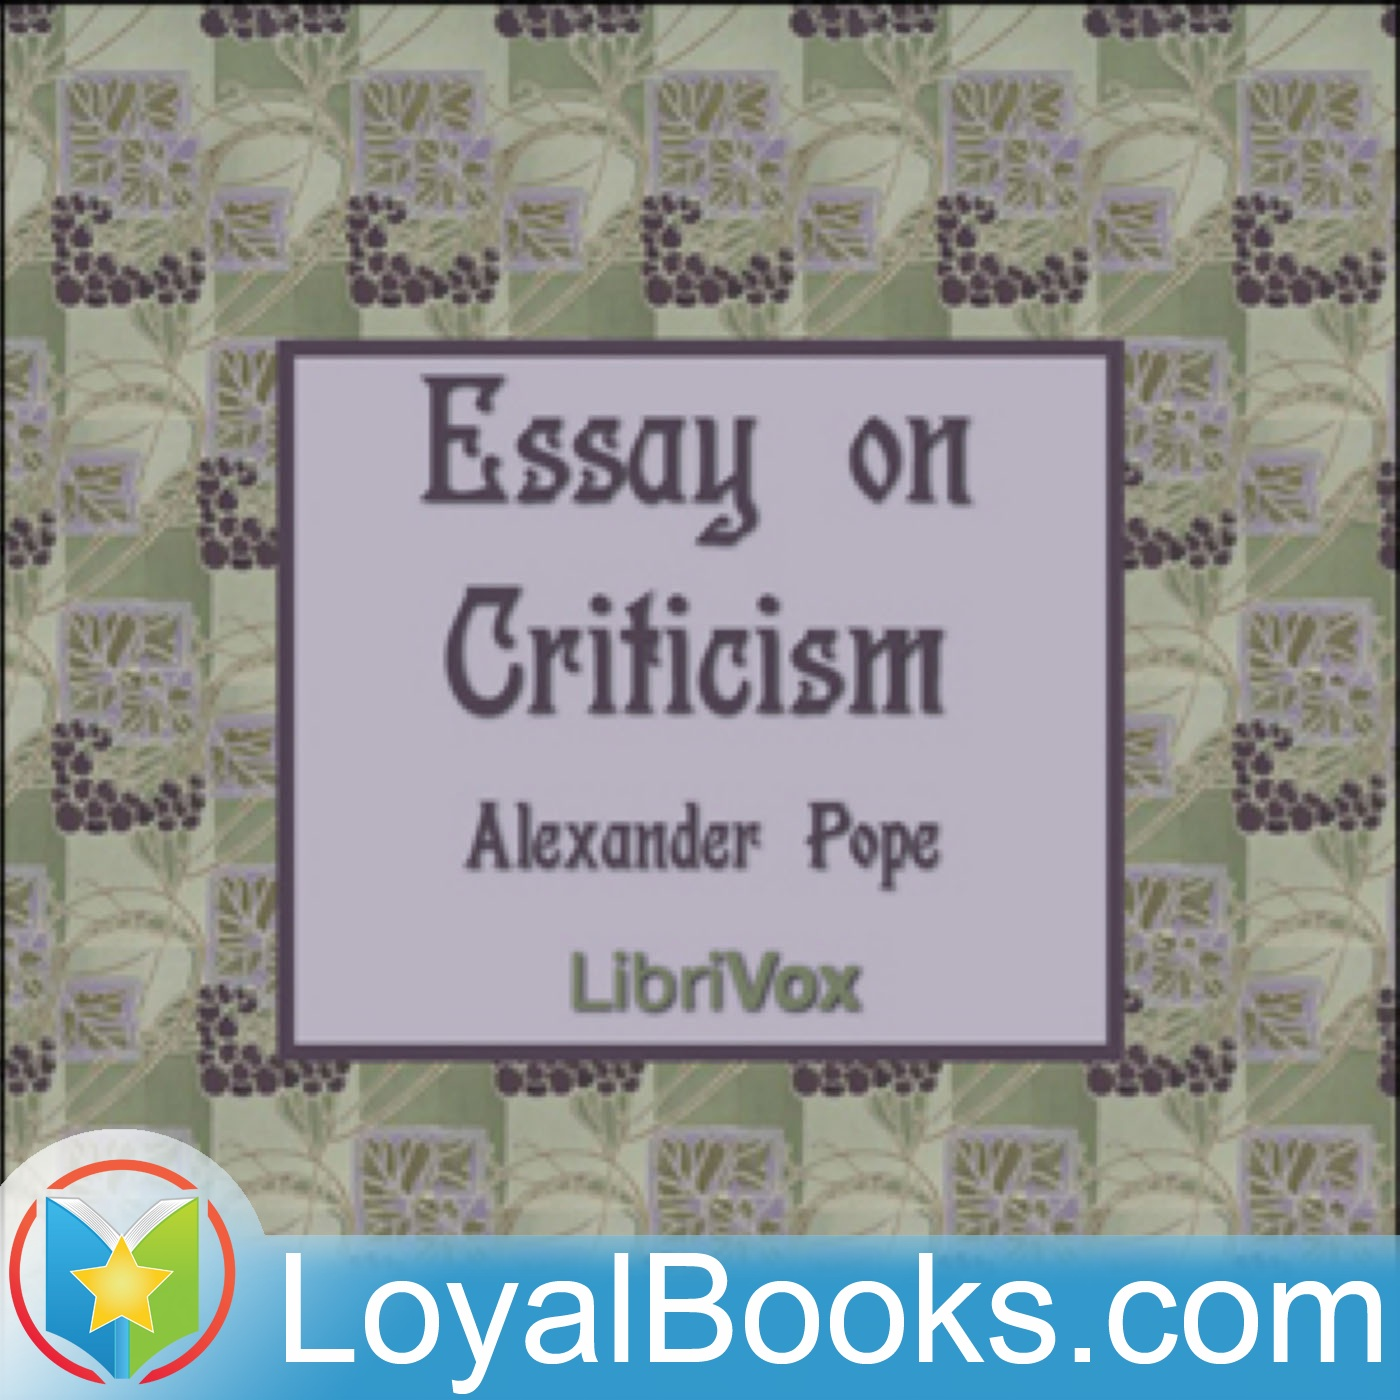 007 Alexander Pope Essay On Criticism Example Outstanding Part 1 Analysis Summary Full